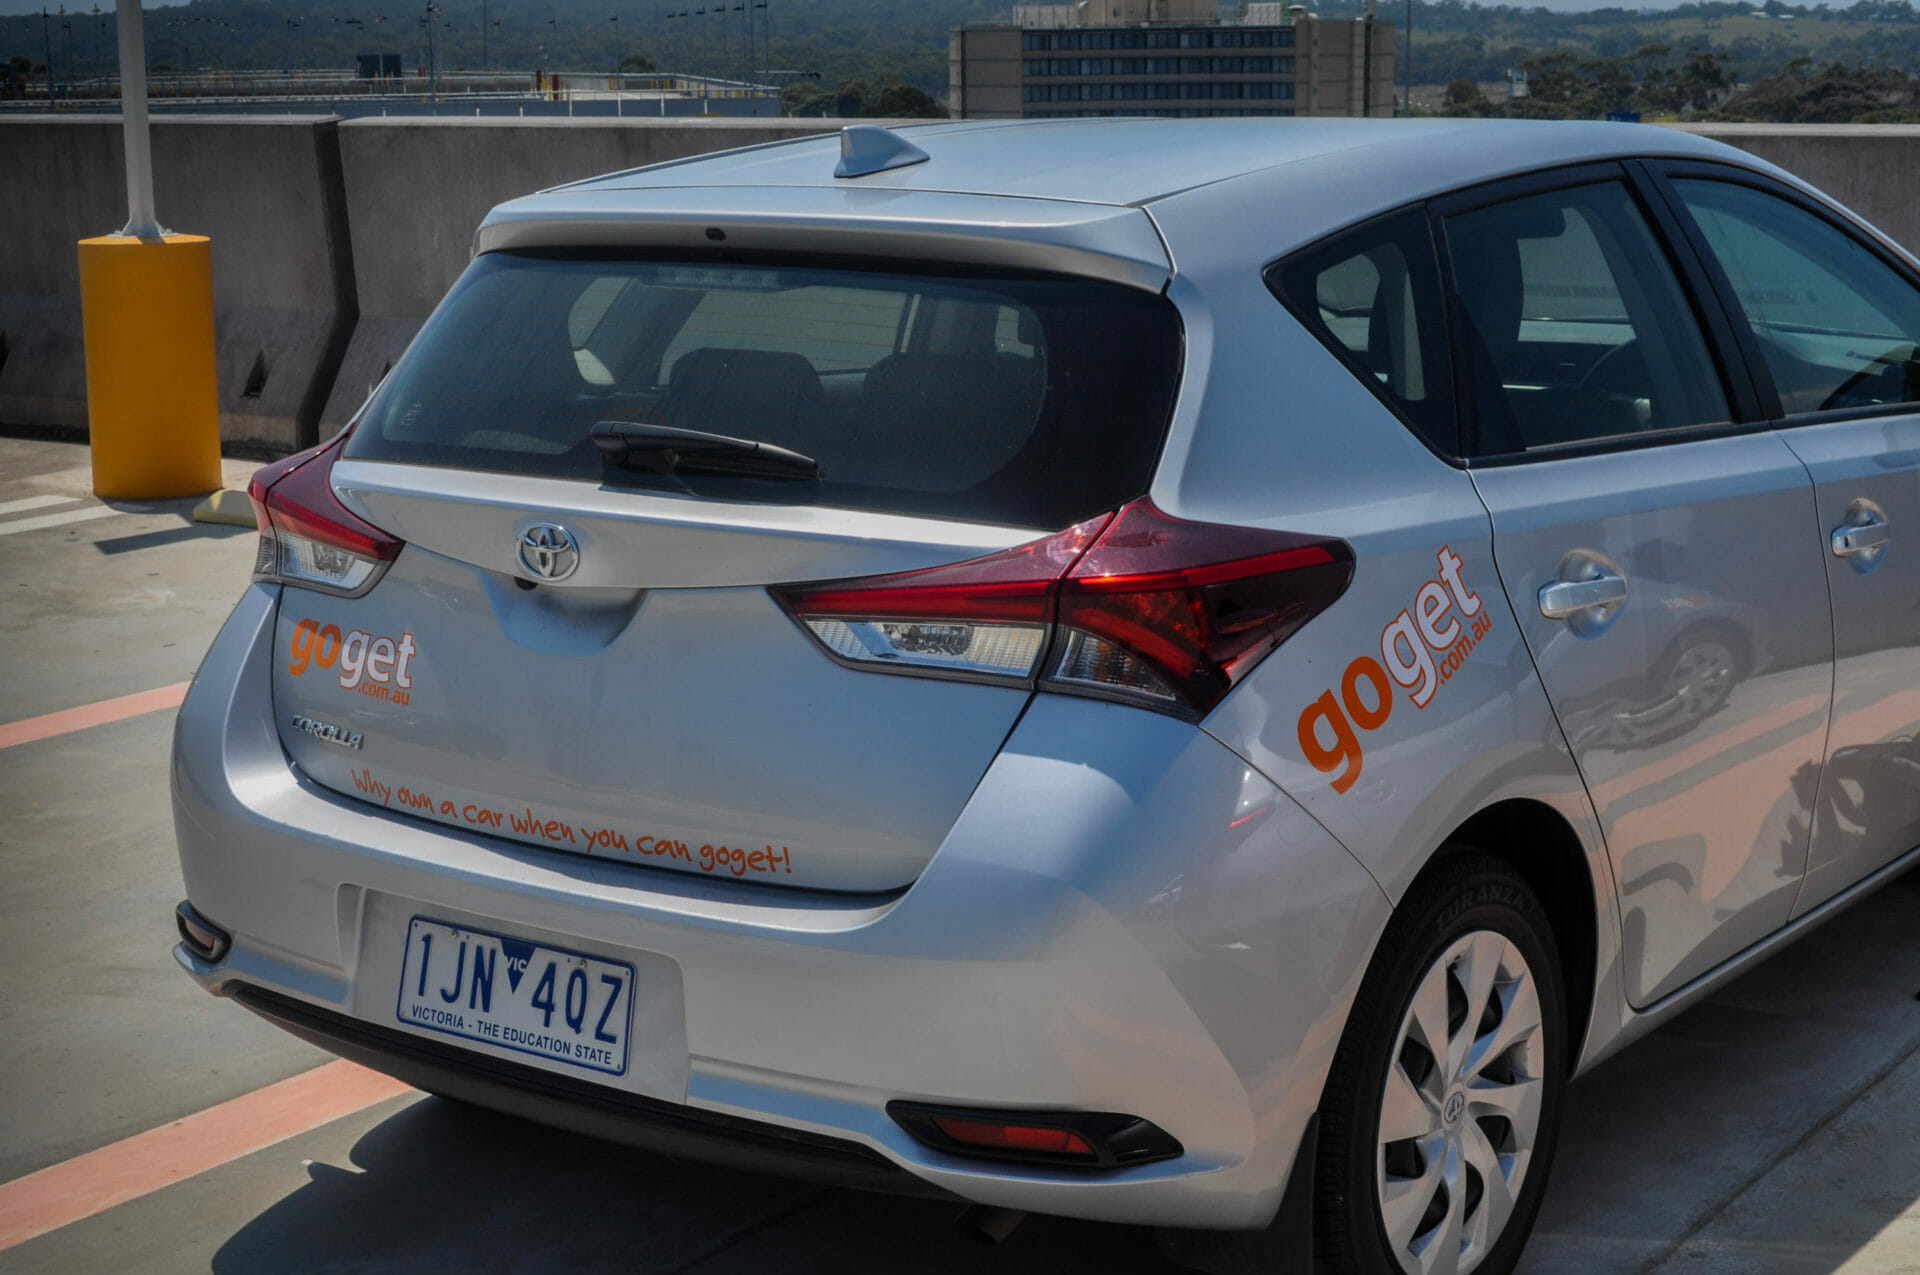 A GoGet Corolla at Melbourne Airport with a Victorian license plate